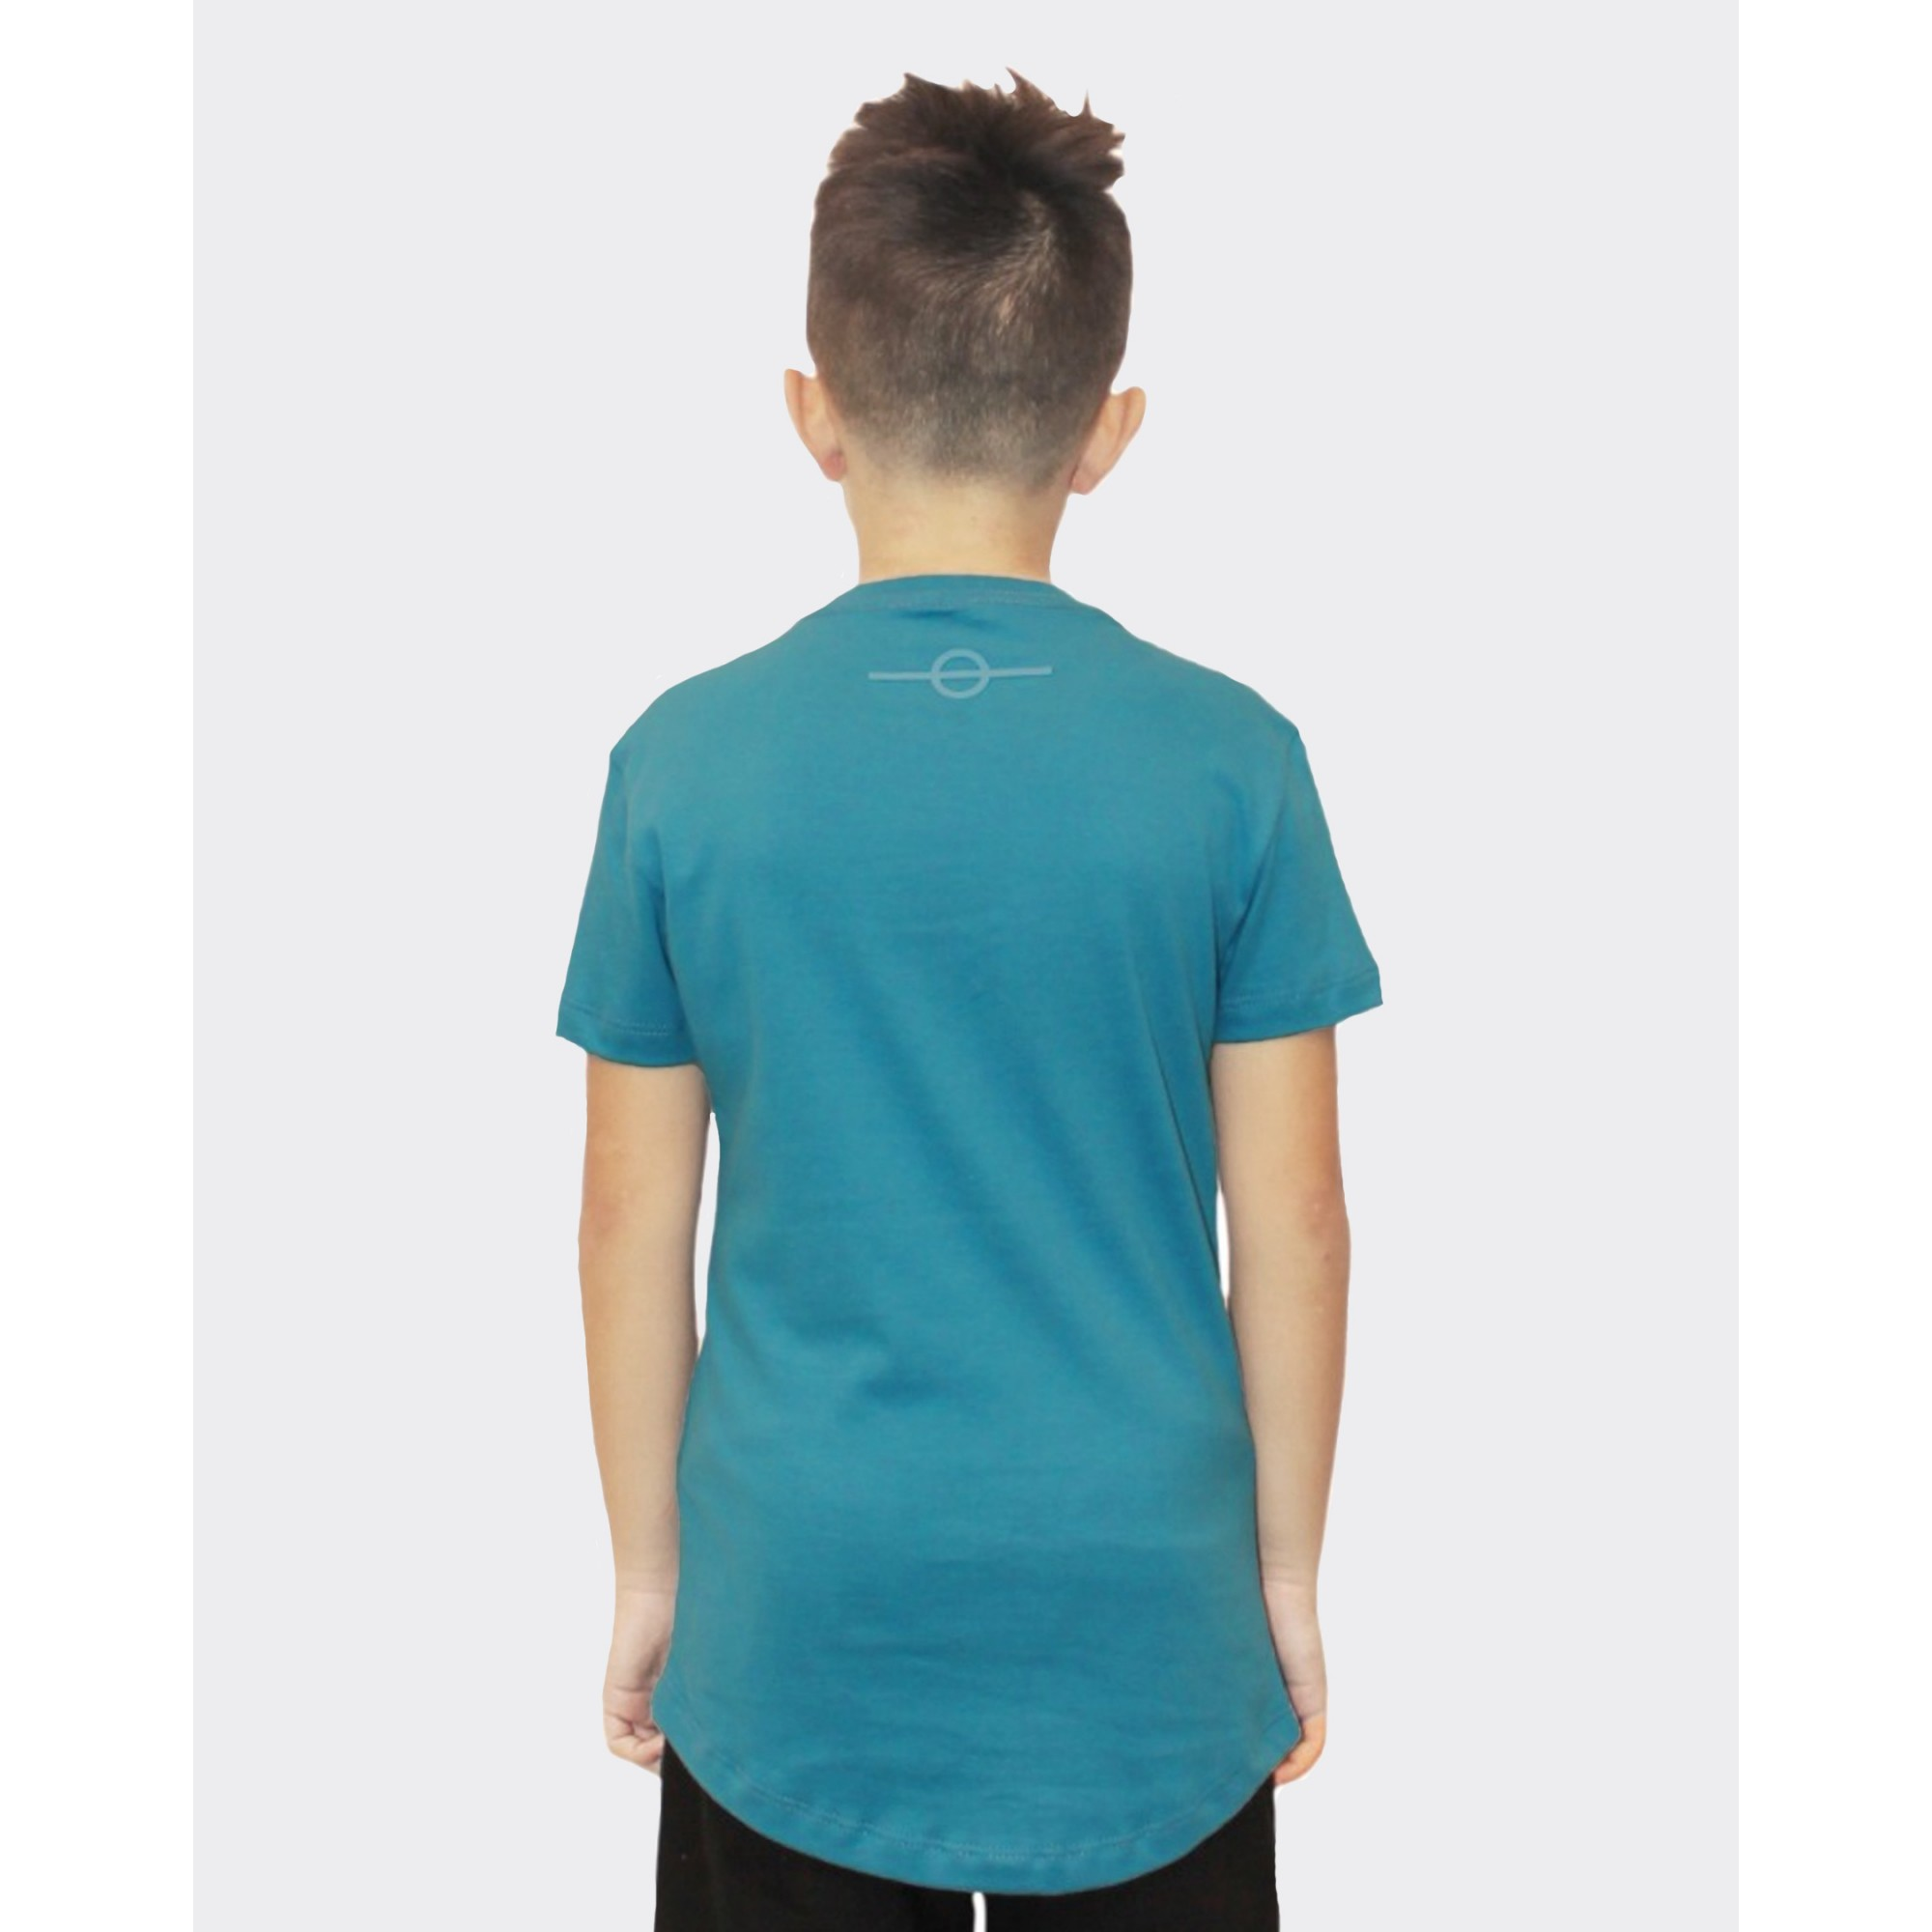 Camiseta Buh Kids Relevo Blue